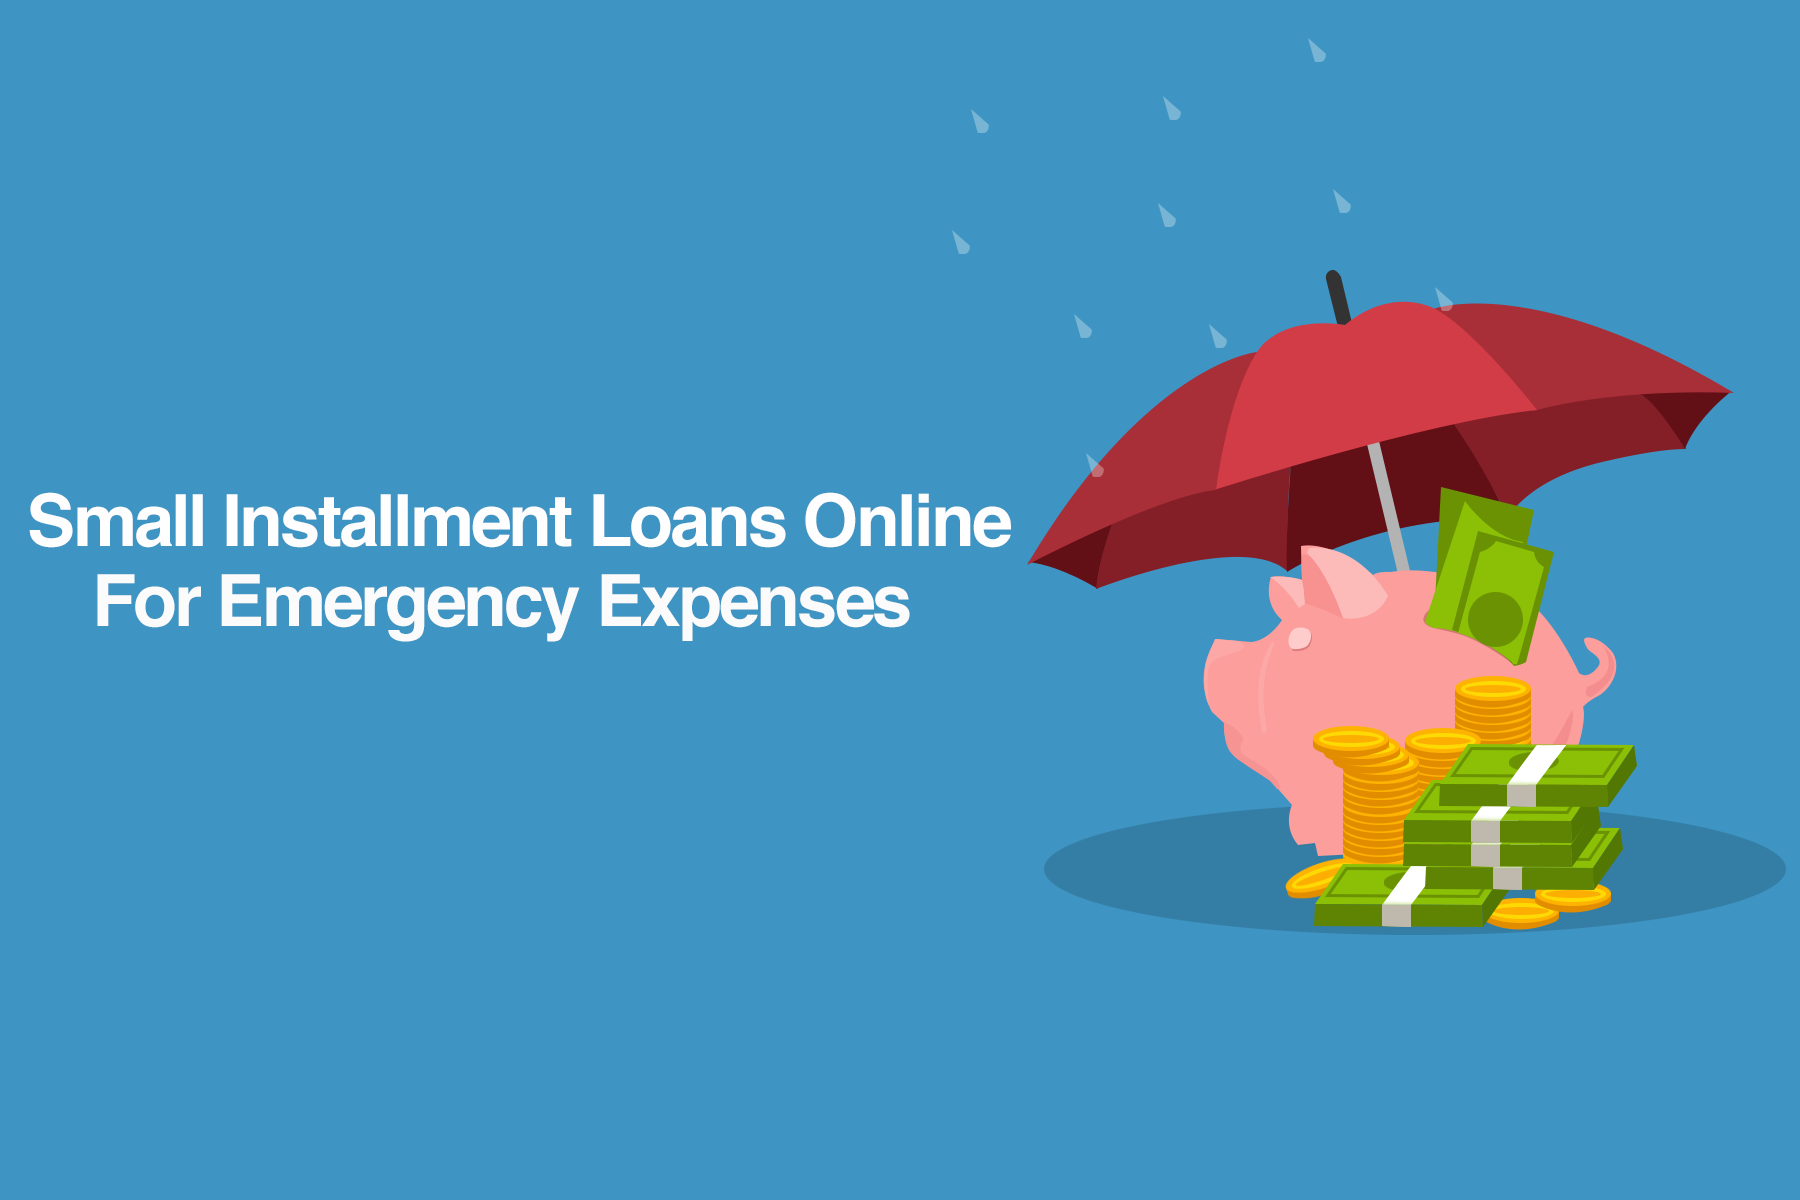 Small Installment Loans Online for Emergency Expenses